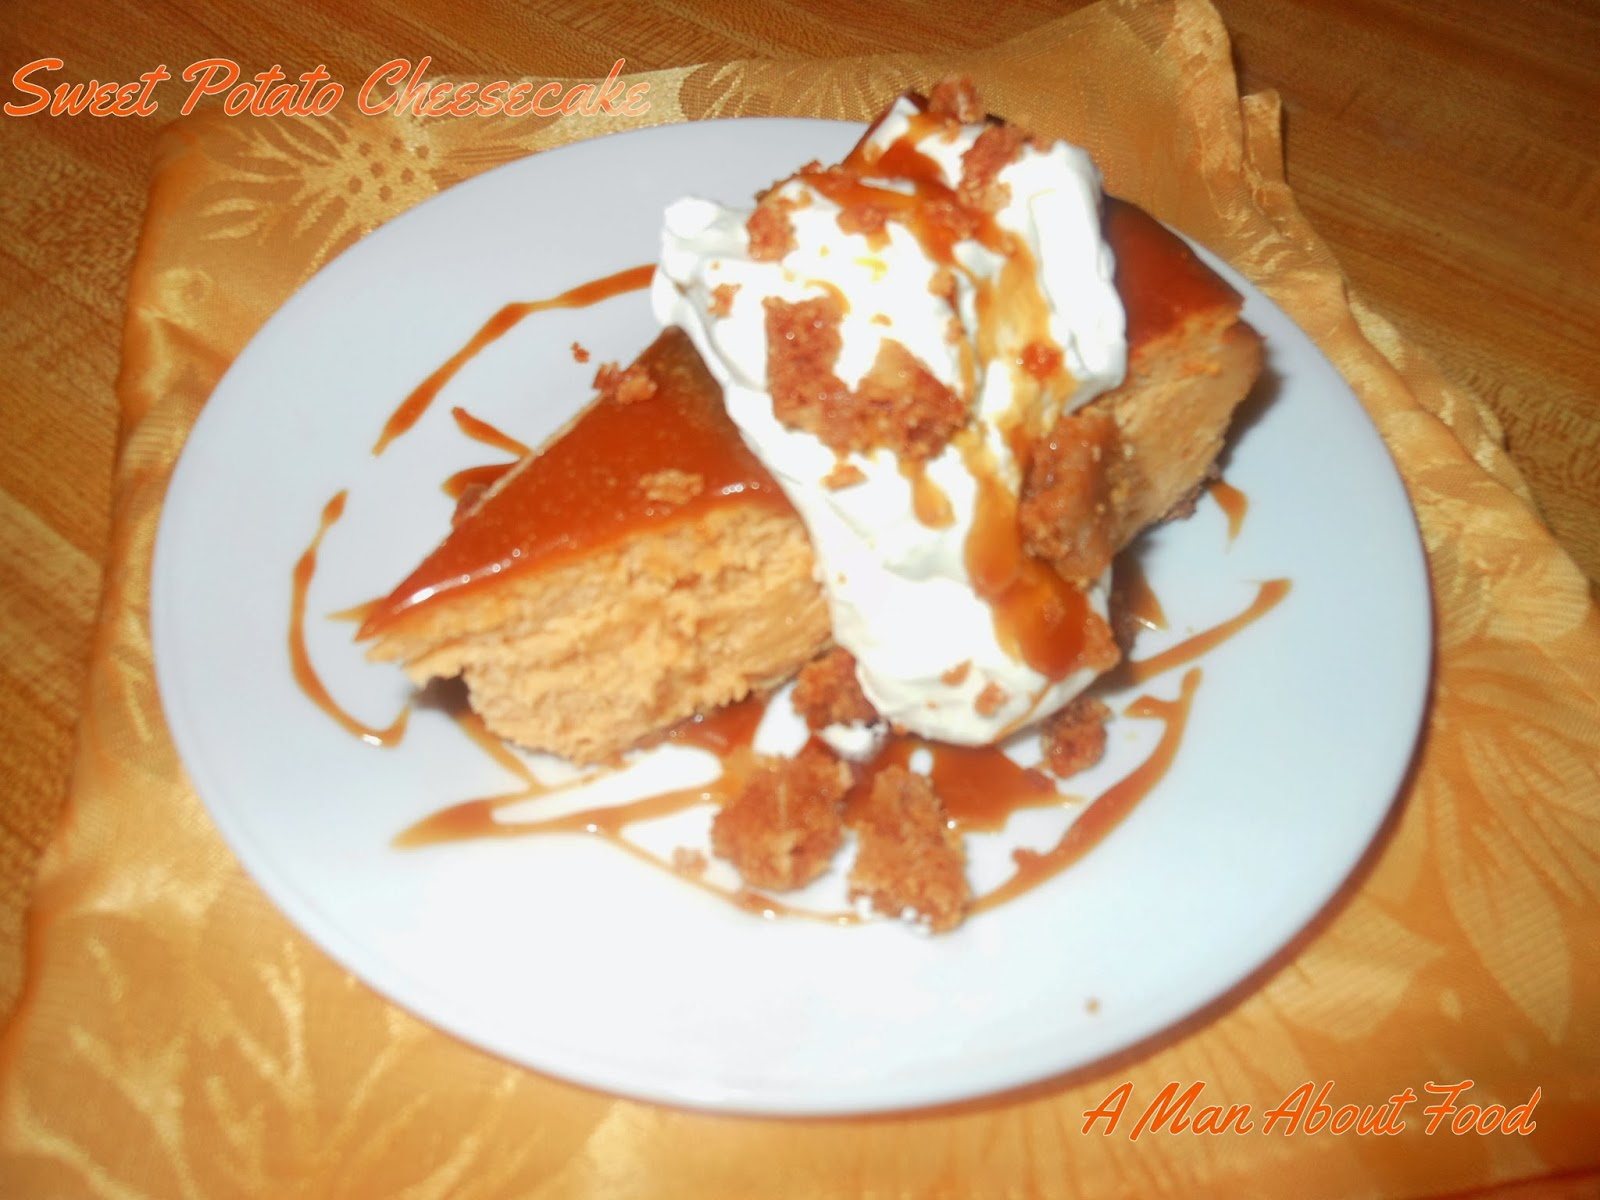 Man About Food: Sweet Potato Cheesecake